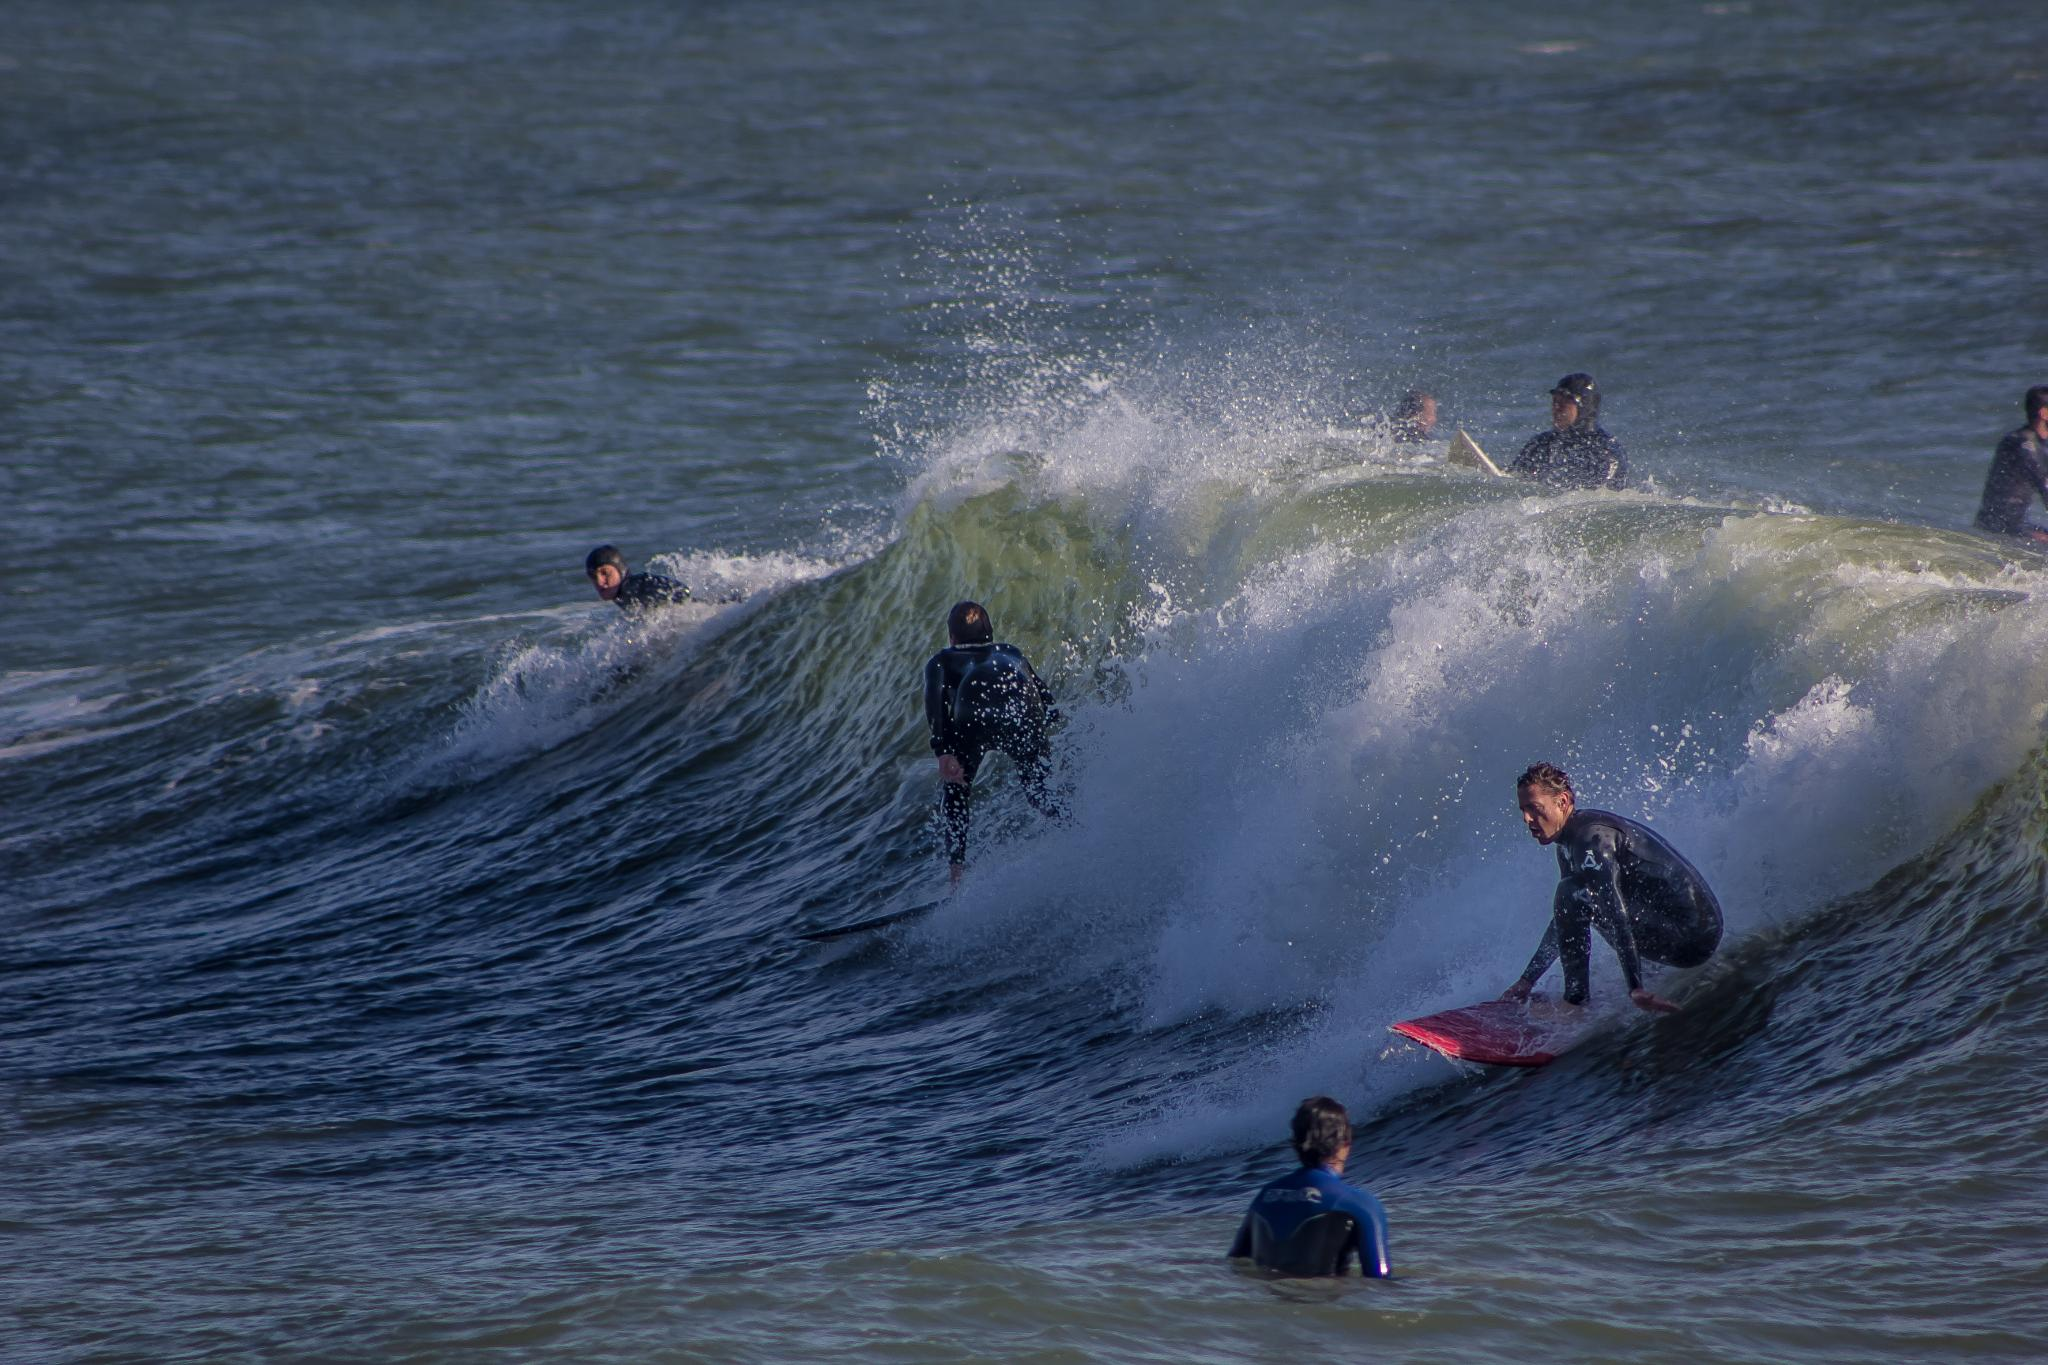 Catching the Wave by McBridePictures.com